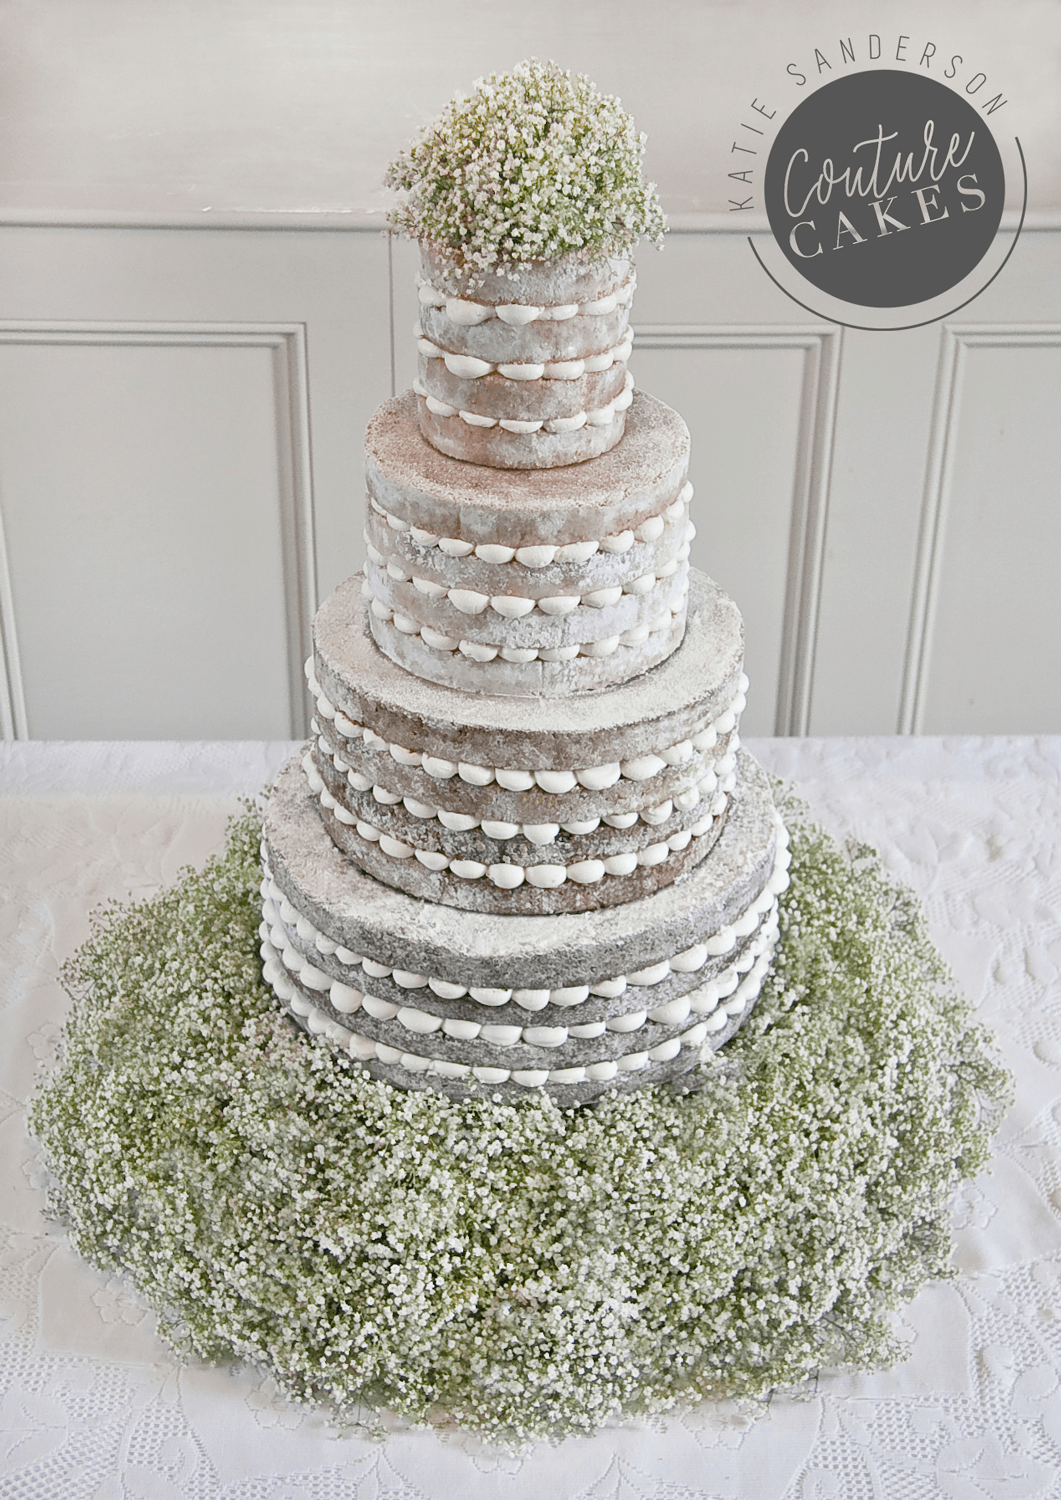 Naked Cake serves 180 portions, Price £465, Plus £120 bed of gypsophila